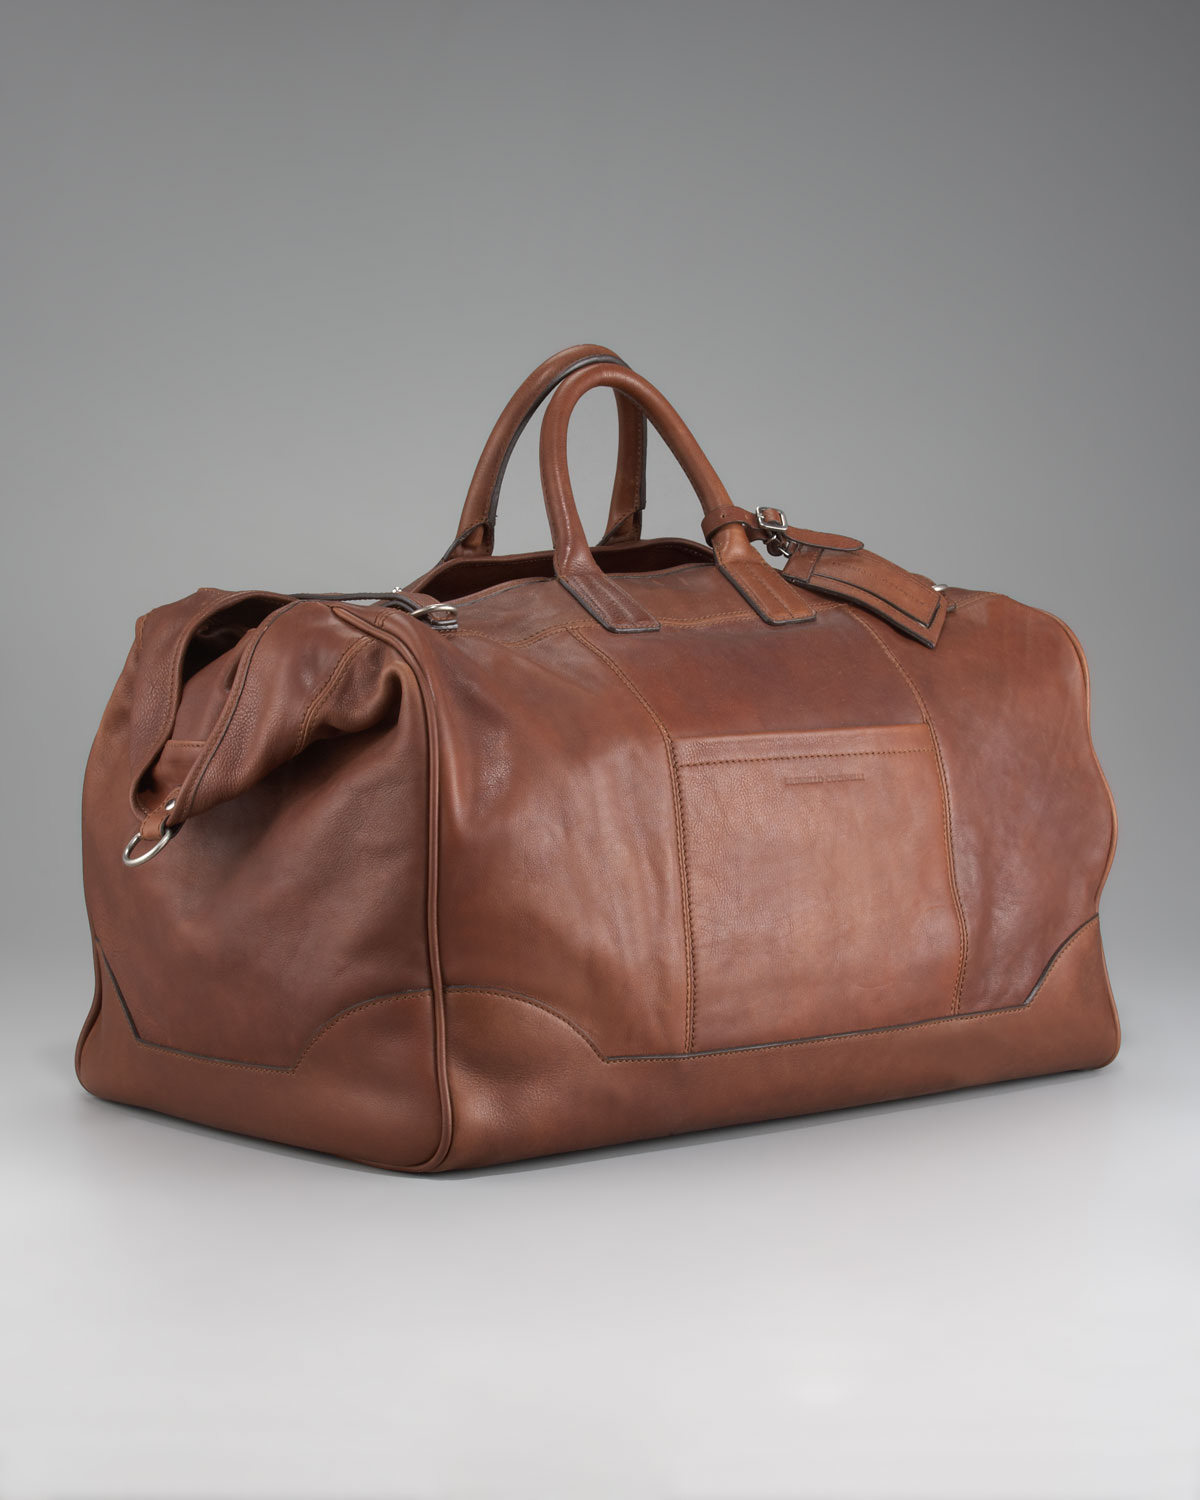 Brunello cucinelli Leather Travel Bag in Brown for Men | Lyst